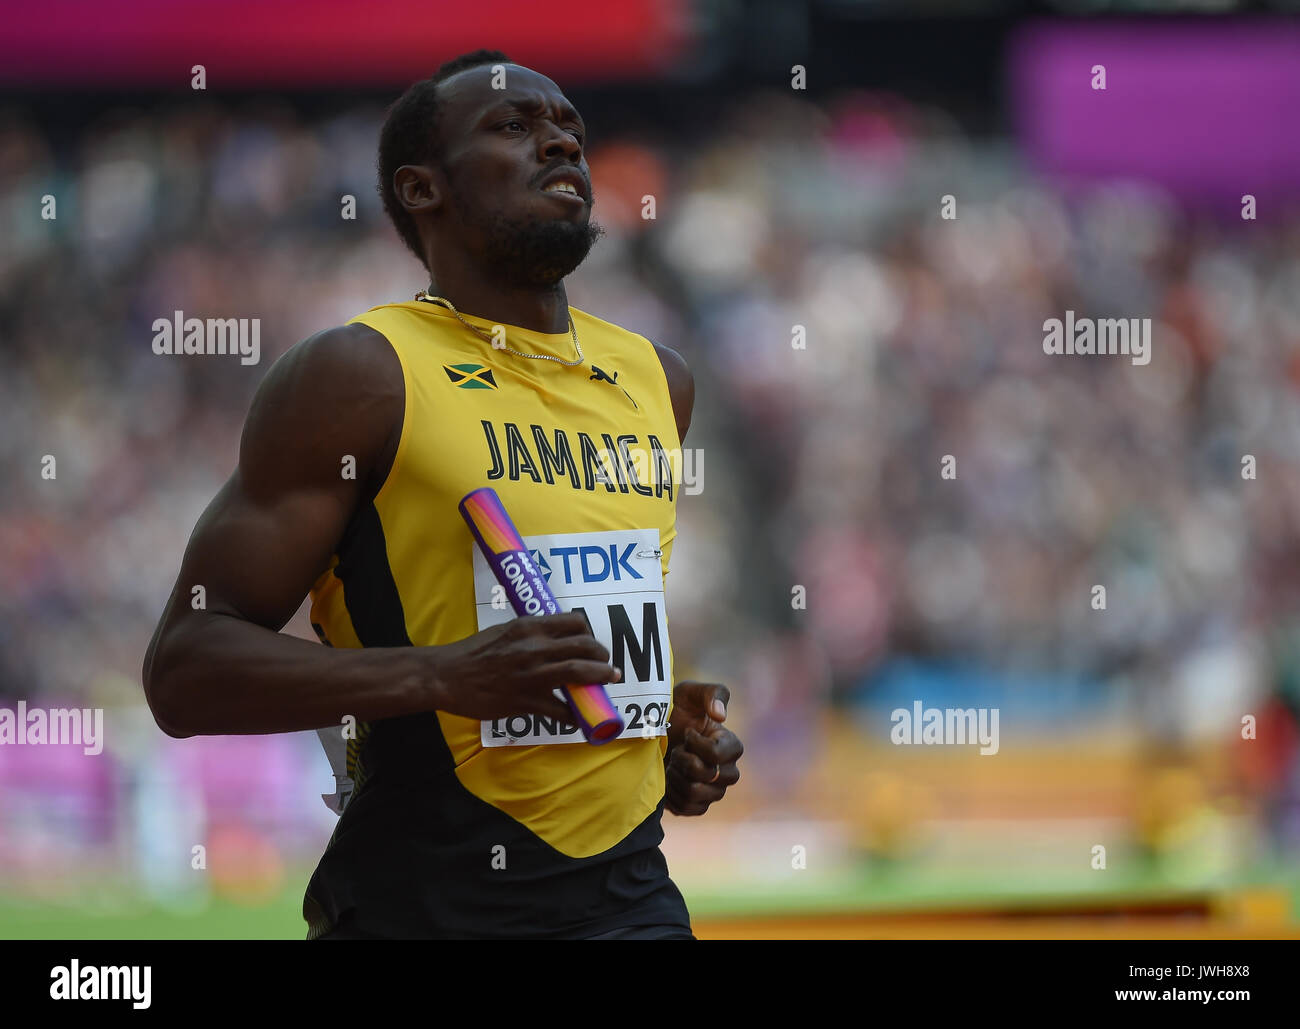 London, UK. 12th Aug, 2017. Usain Bolt during 4 times 100 meter relay heat in London at the 2017 IAAF World Championships athletics. Credit: Ulrik Pedersen/Alamy Live News - Stock Image